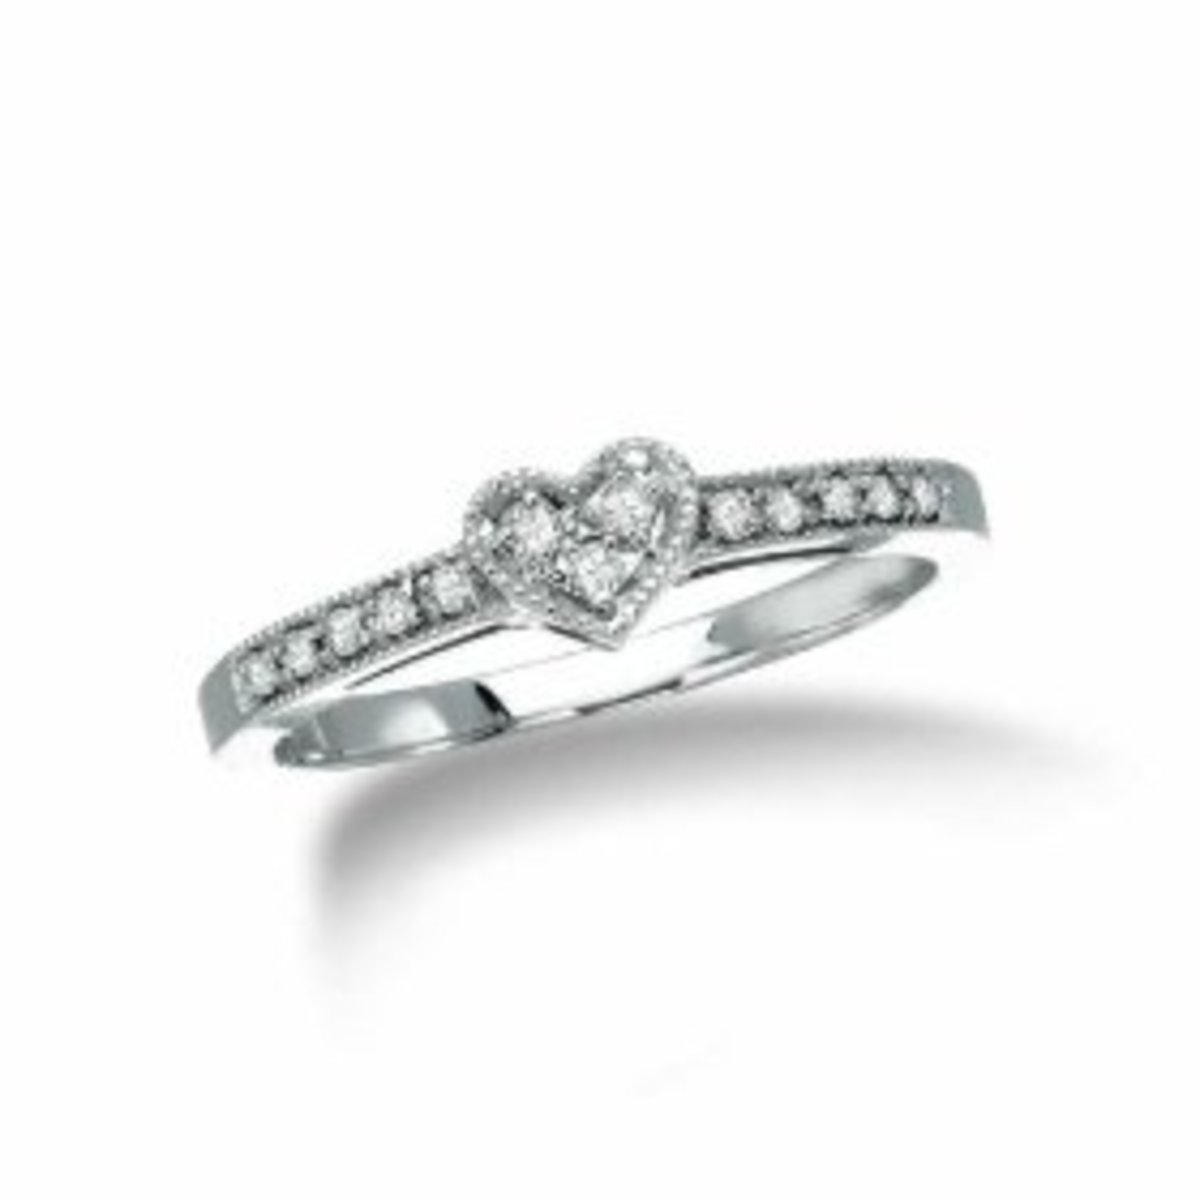 choosing a diamond promise ring for your girlfriend